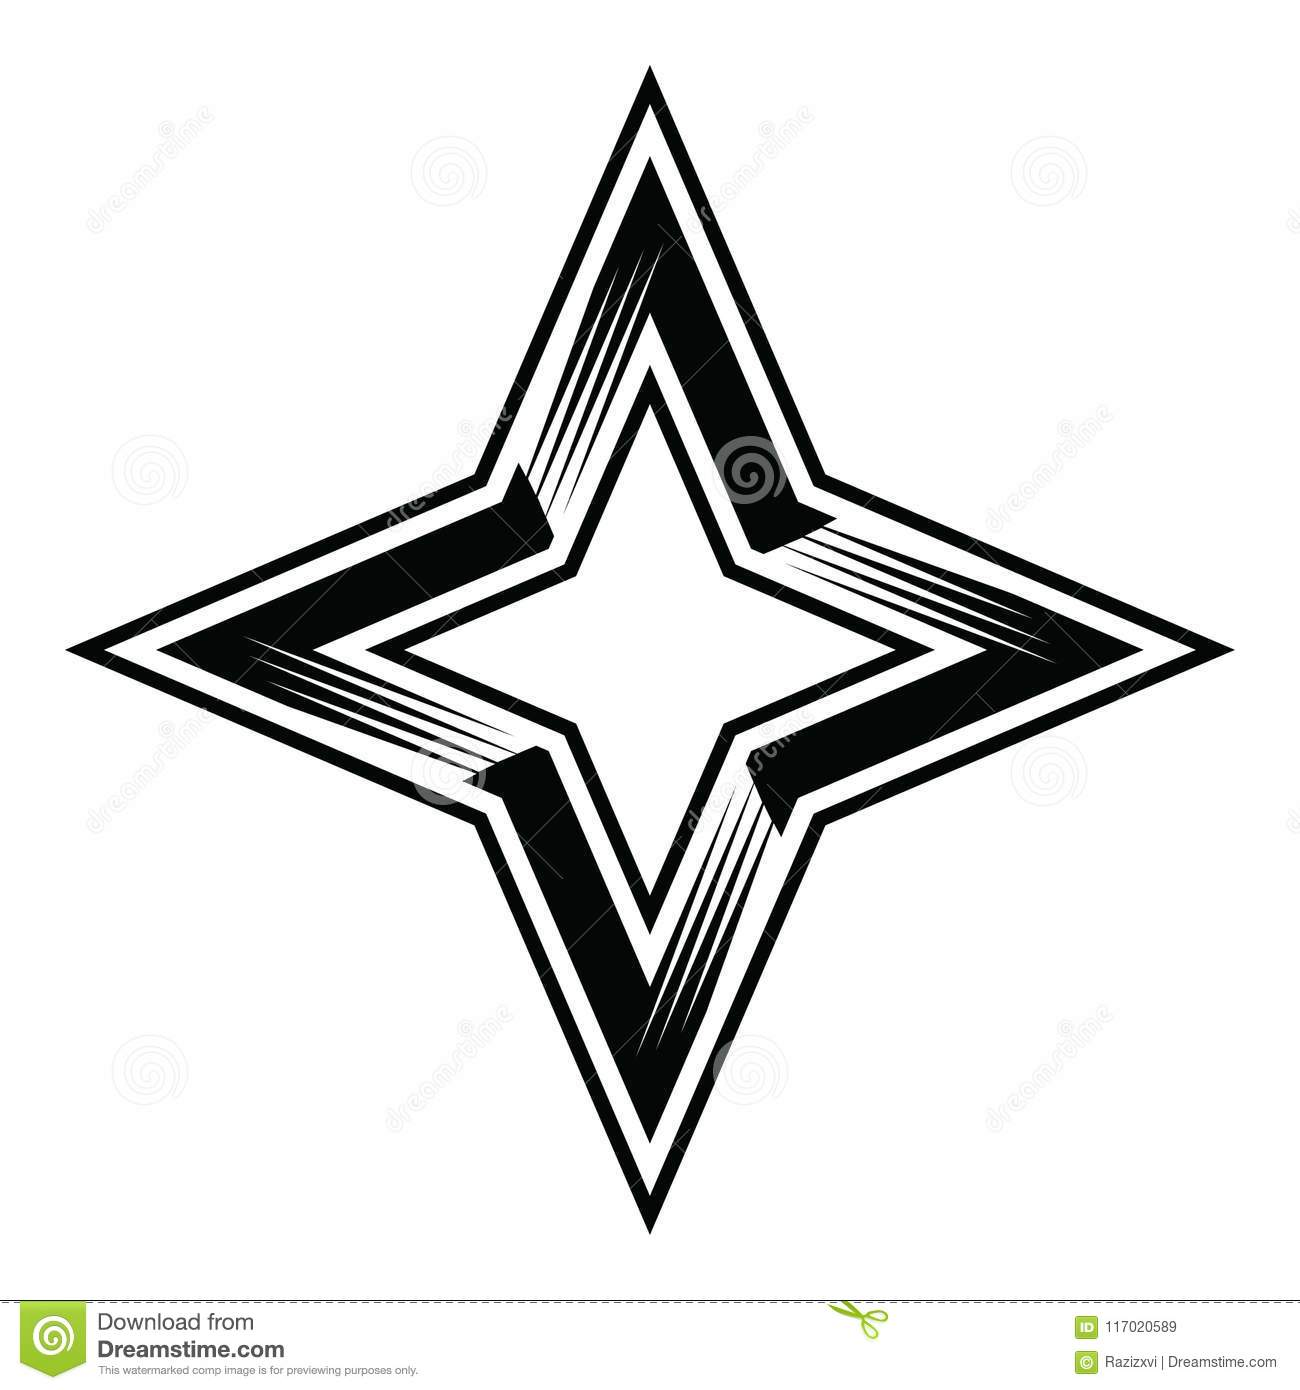 hight resolution of four point star 4pointstar four 4 points stars classy simple vector illustration clipart aics6 eps10 illustrator corel draw icon logo sticker emblem patch